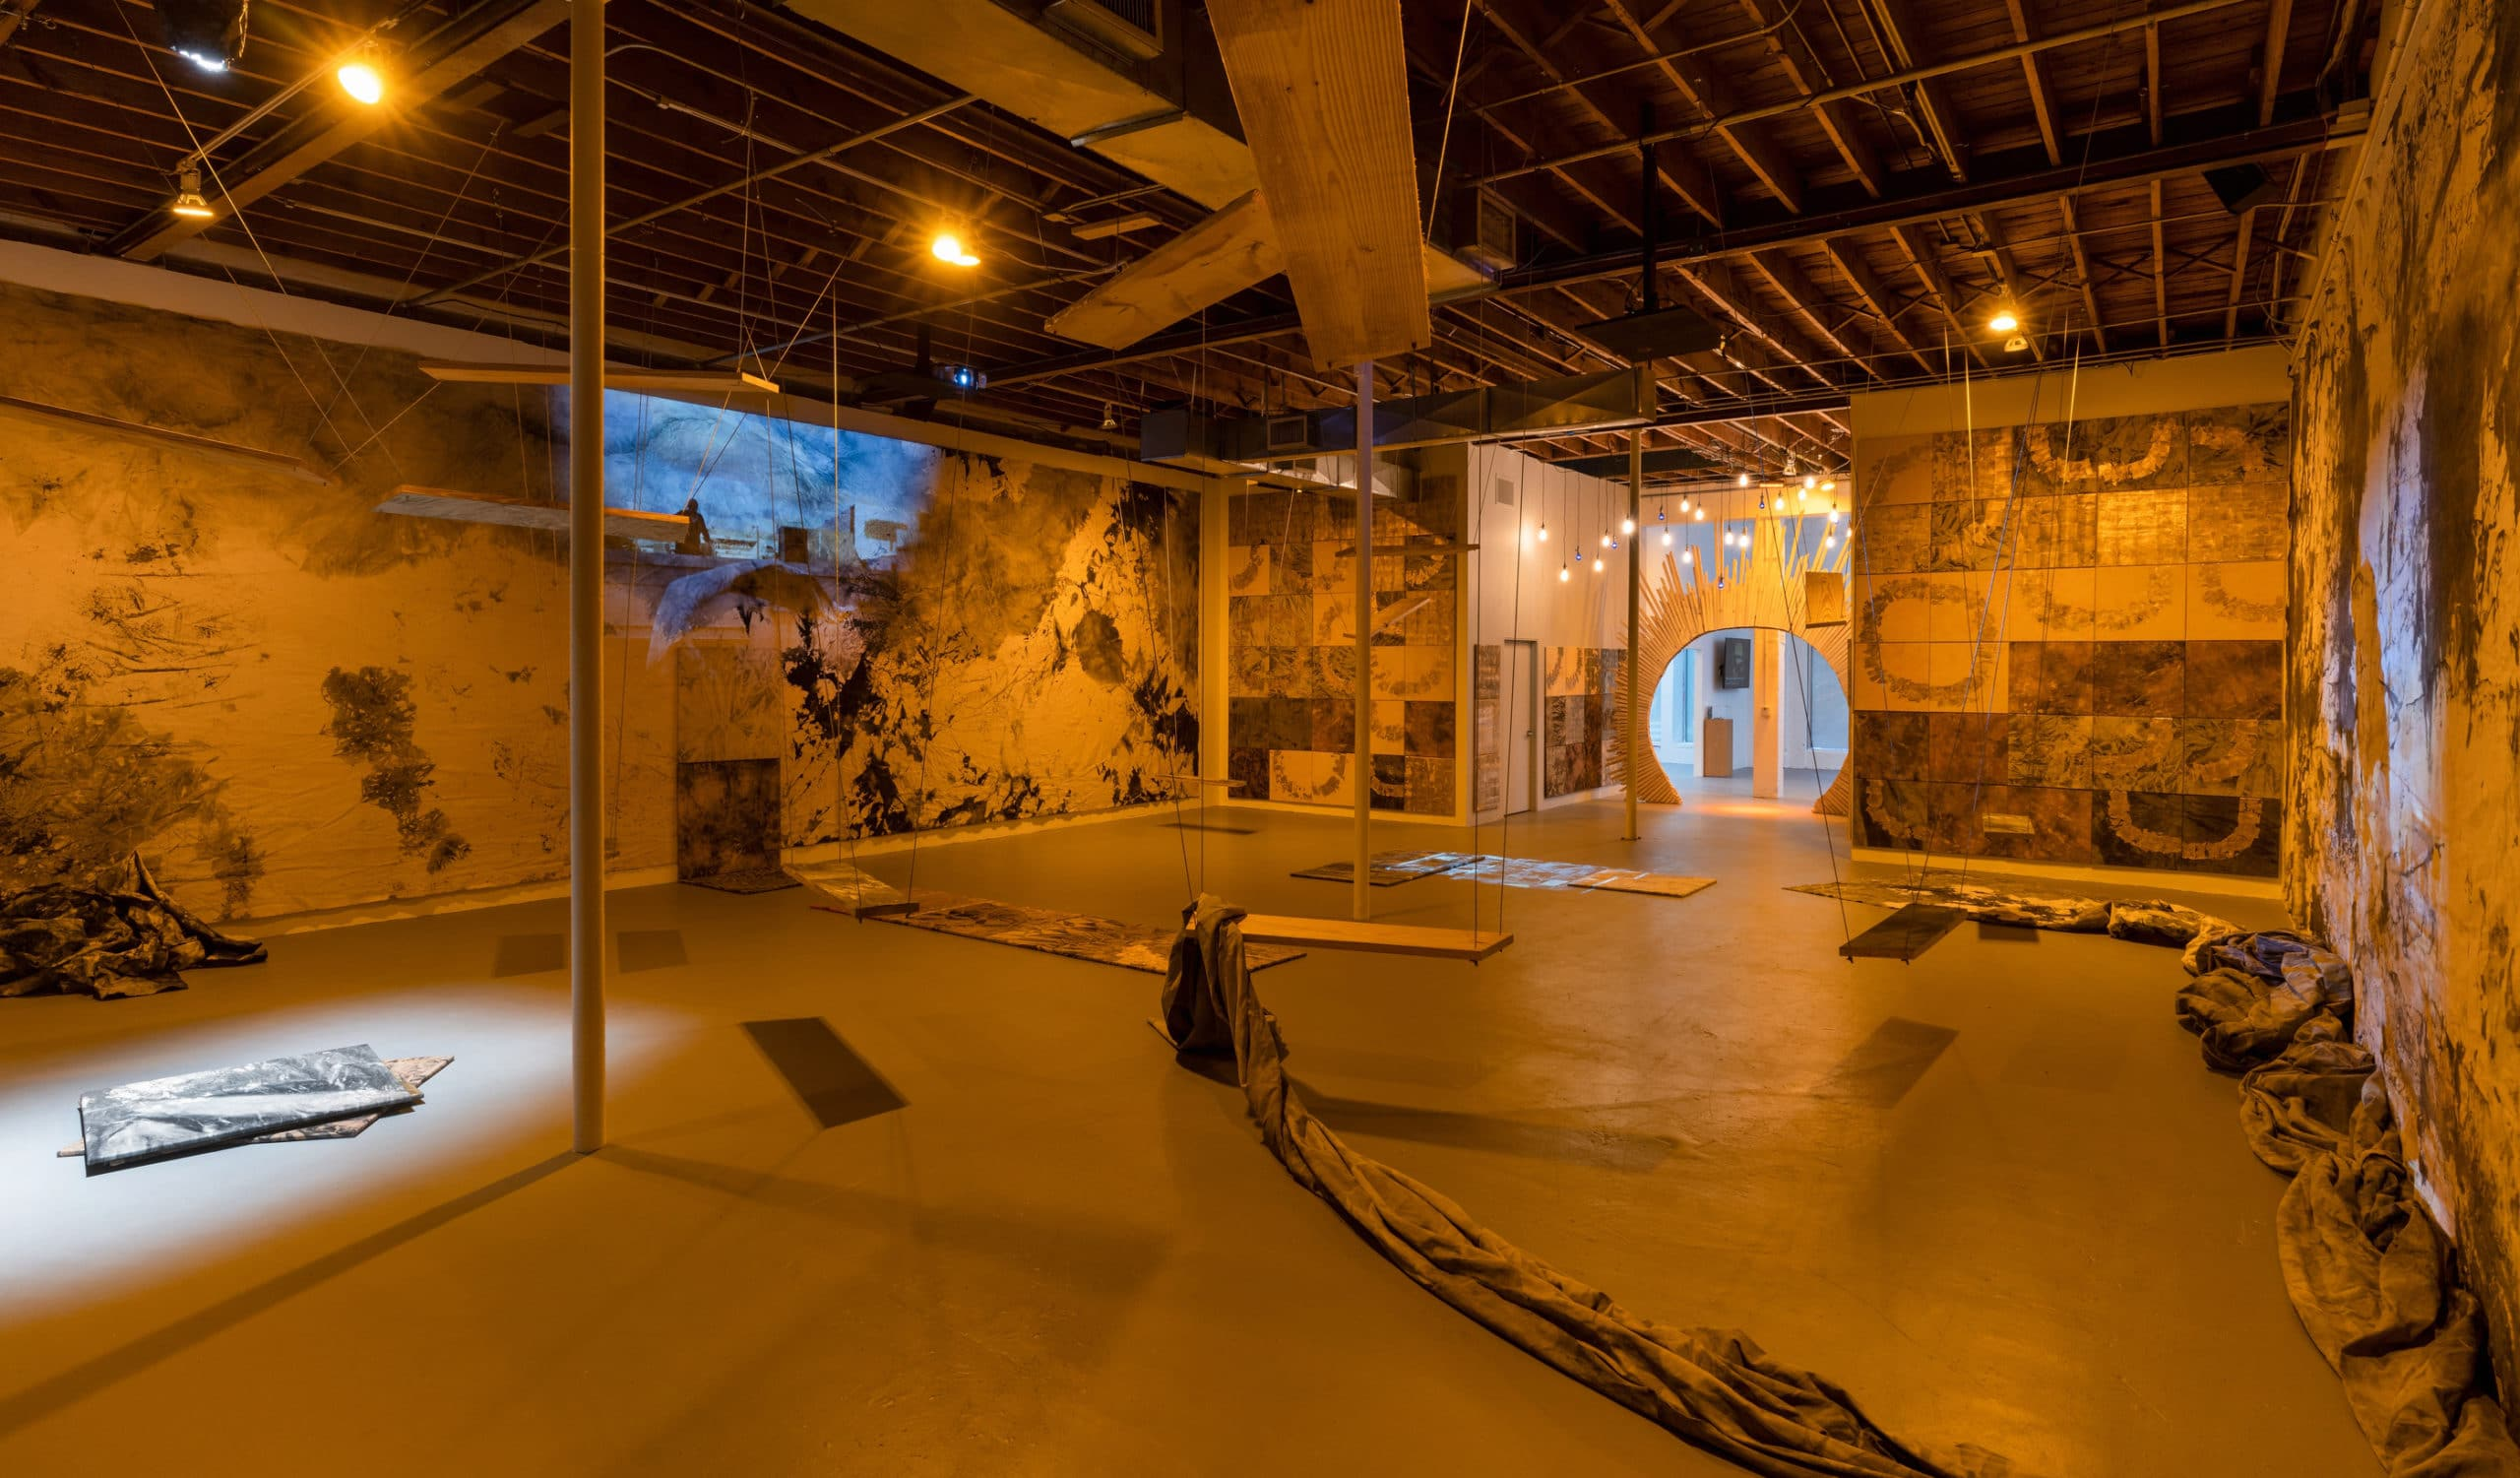 Installation view of at Locust Projects made by Dusk. Has a dimly lit interior and patterned walls.